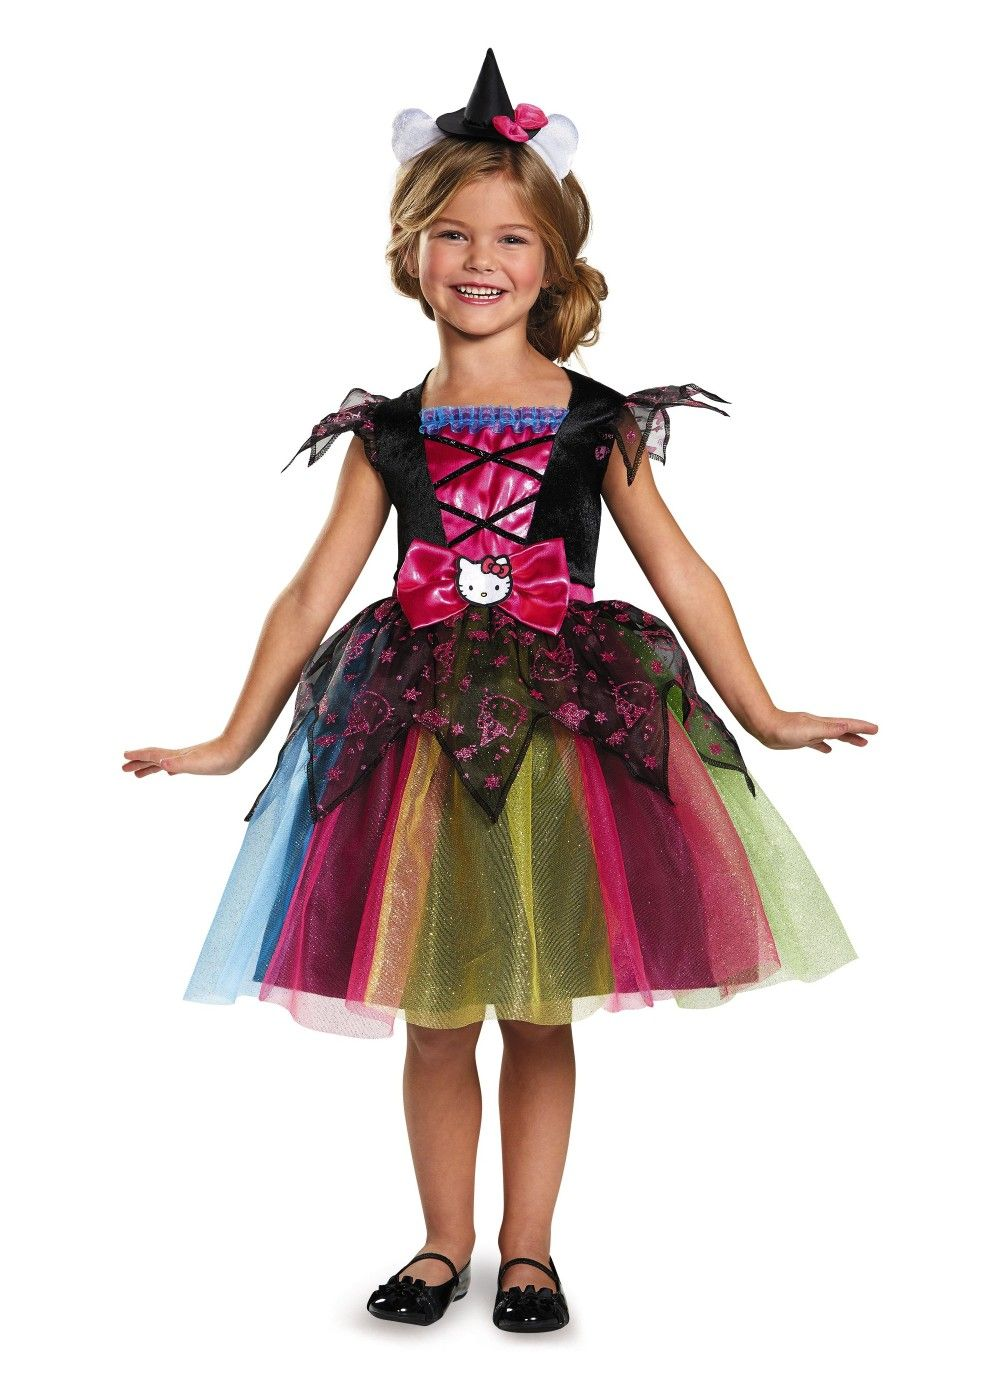 the girls hello kitty witch deluxe costume is a great character and halloween outfit sold by wonder costumes - Halloween Hello Kitty Costume